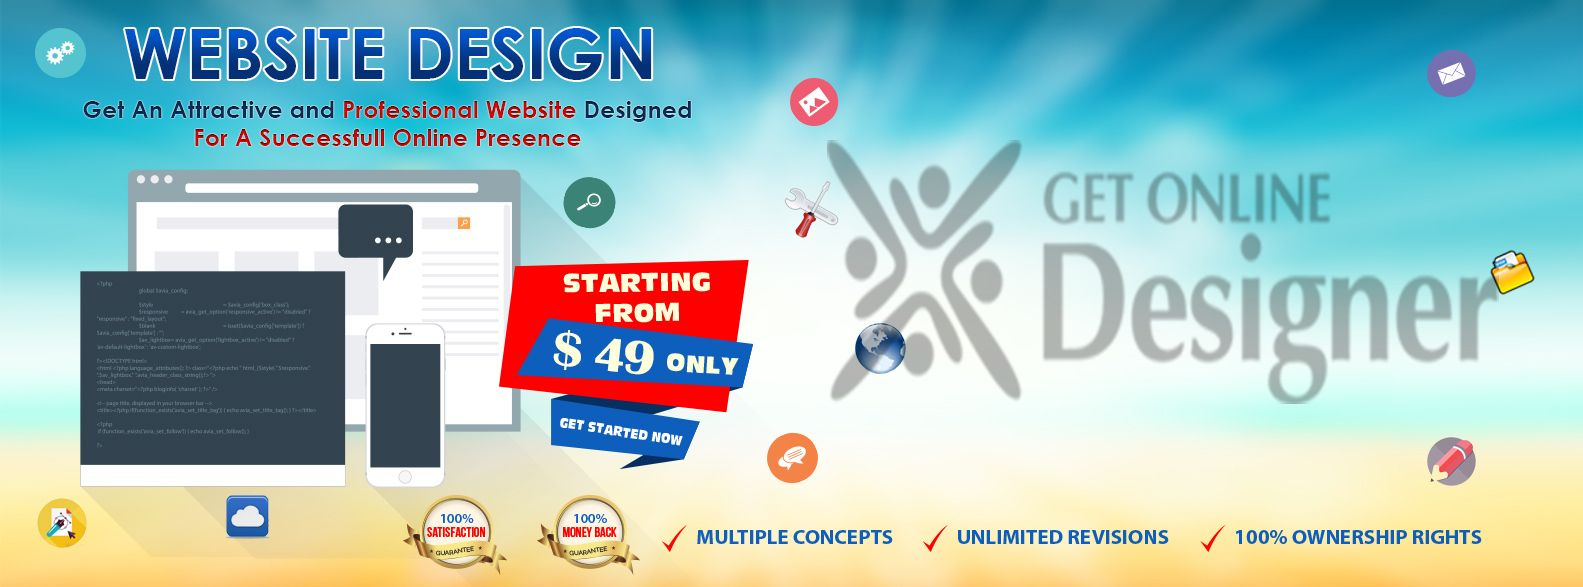 Get An Attractive And Professional Website Designed For A Successful Online Presence Websitedesigncompani With Images Professional Website Design Website Design Services